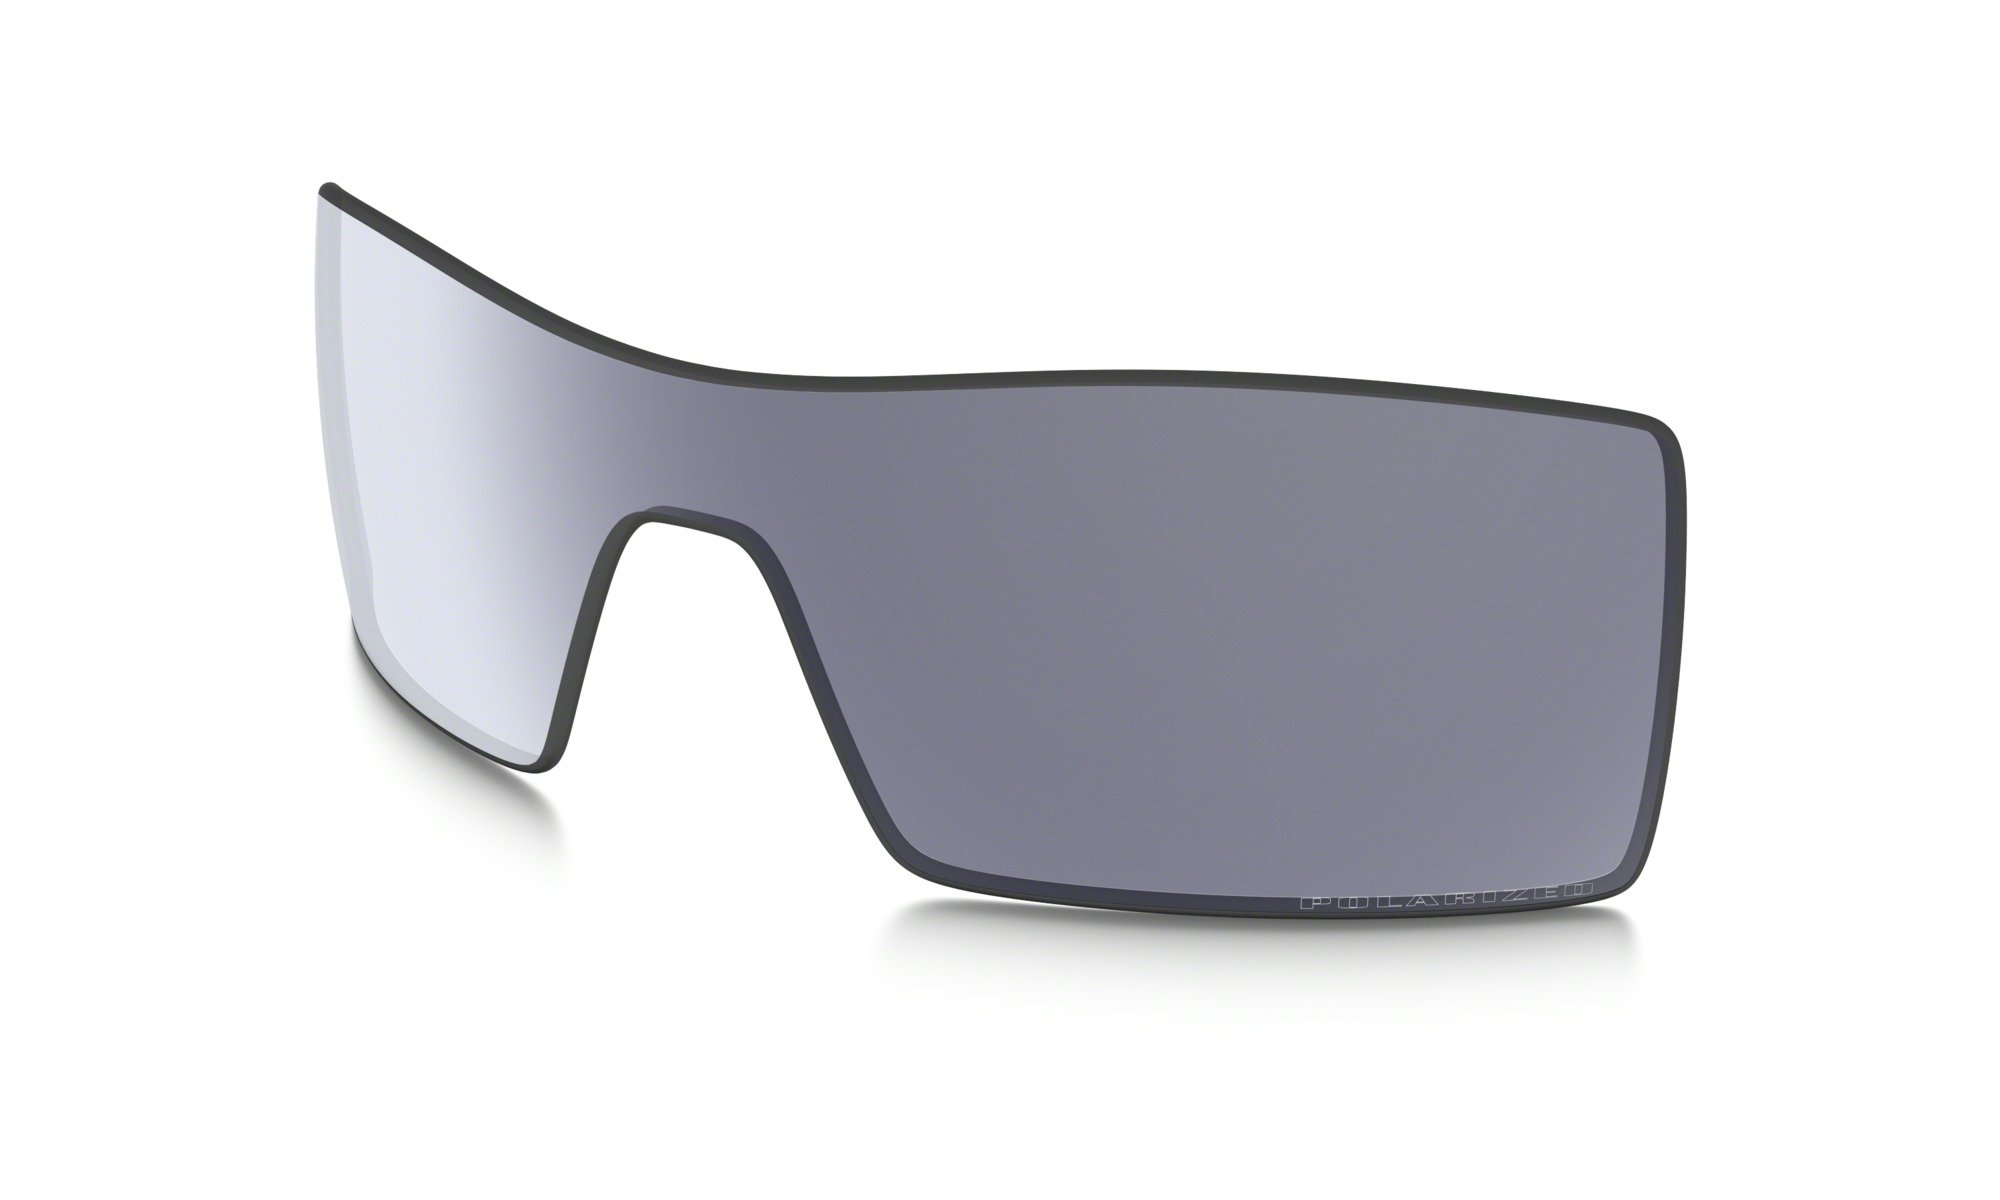 Oakley Oil Rig 16-698 Polarized Rimless Sunglasses,Multi Frame/Grey Lens,One Size by Oakley